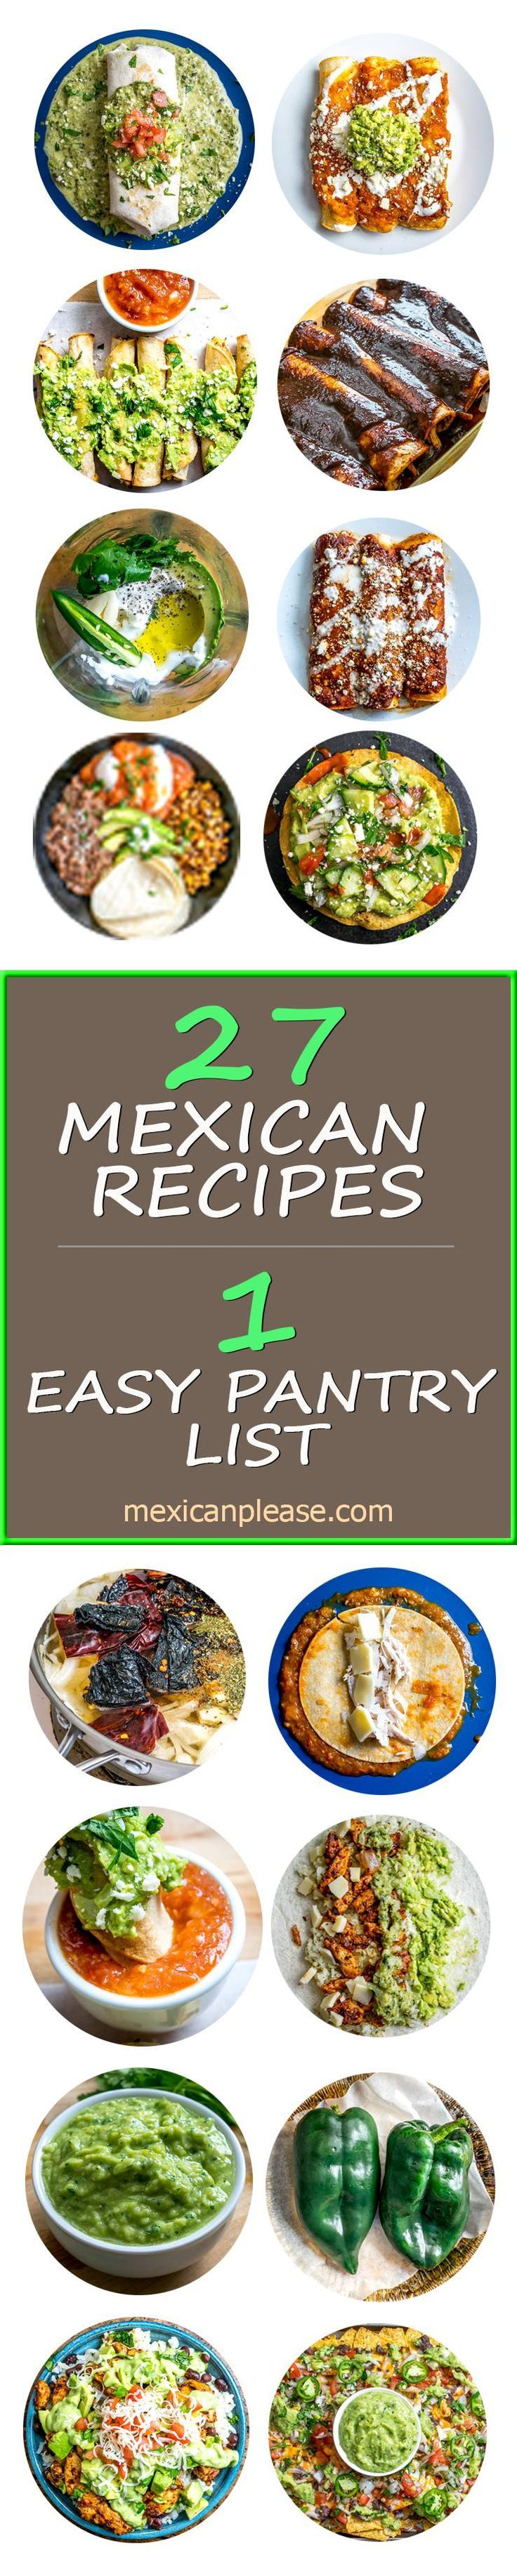 27 authentic mexican food recipes all from a simple pantry list 27 authentic mexican food recipes all from a simple pantry list this free mexican cooking survival guide is the quickest and easiest way to get your home forumfinder Images